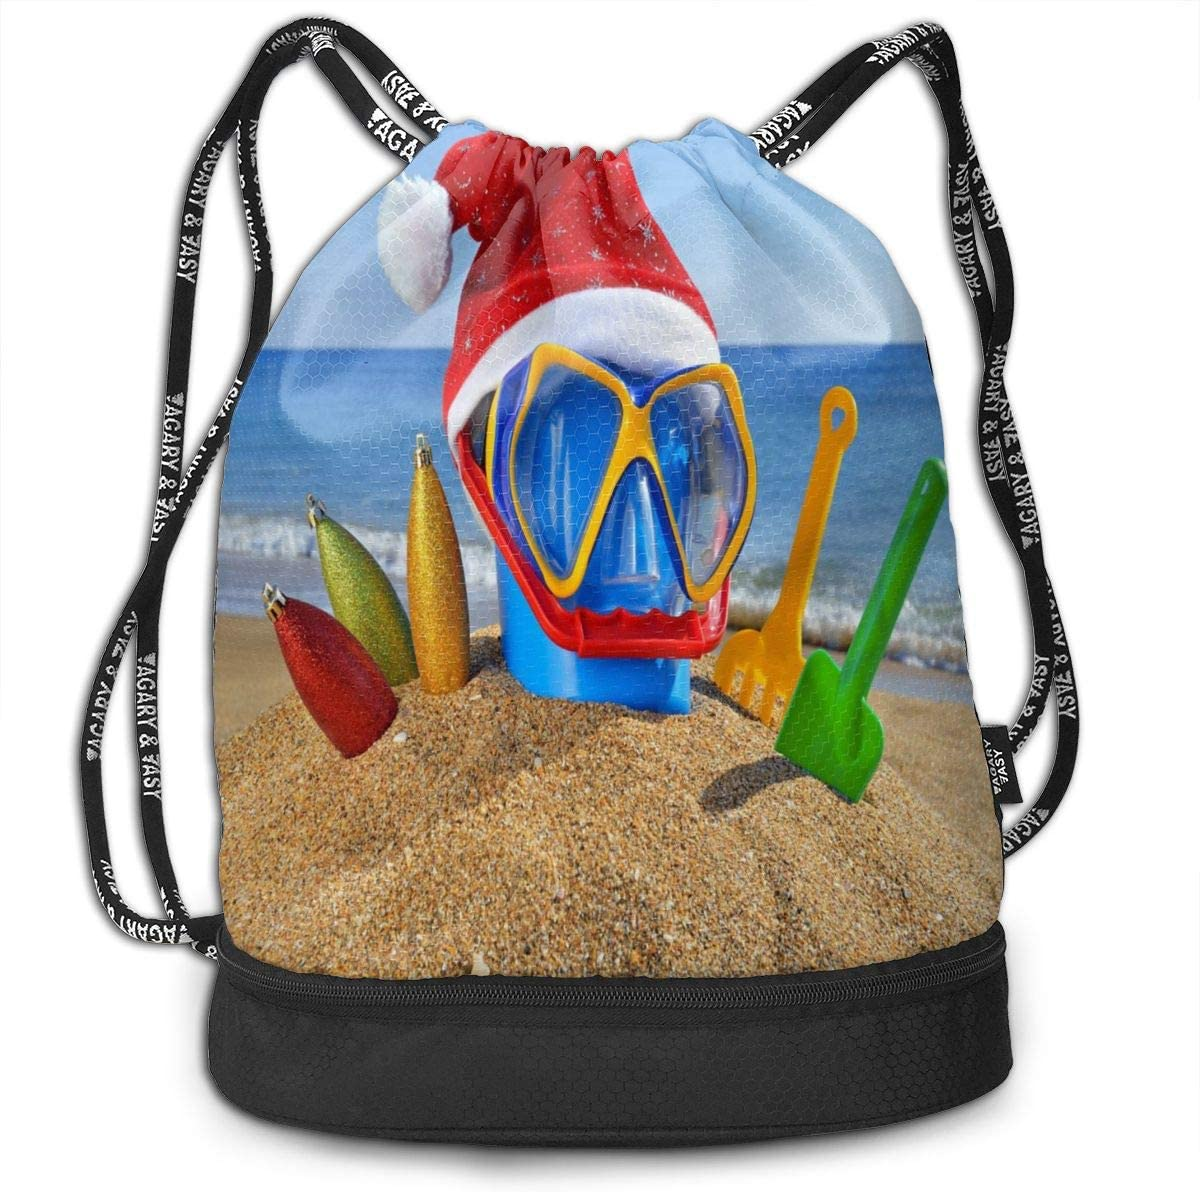 Unisex Bundle Backpack Sand Beach Starfish And Shells Travel Durable Large Space Fantastic Waterproof Drawstring Bag